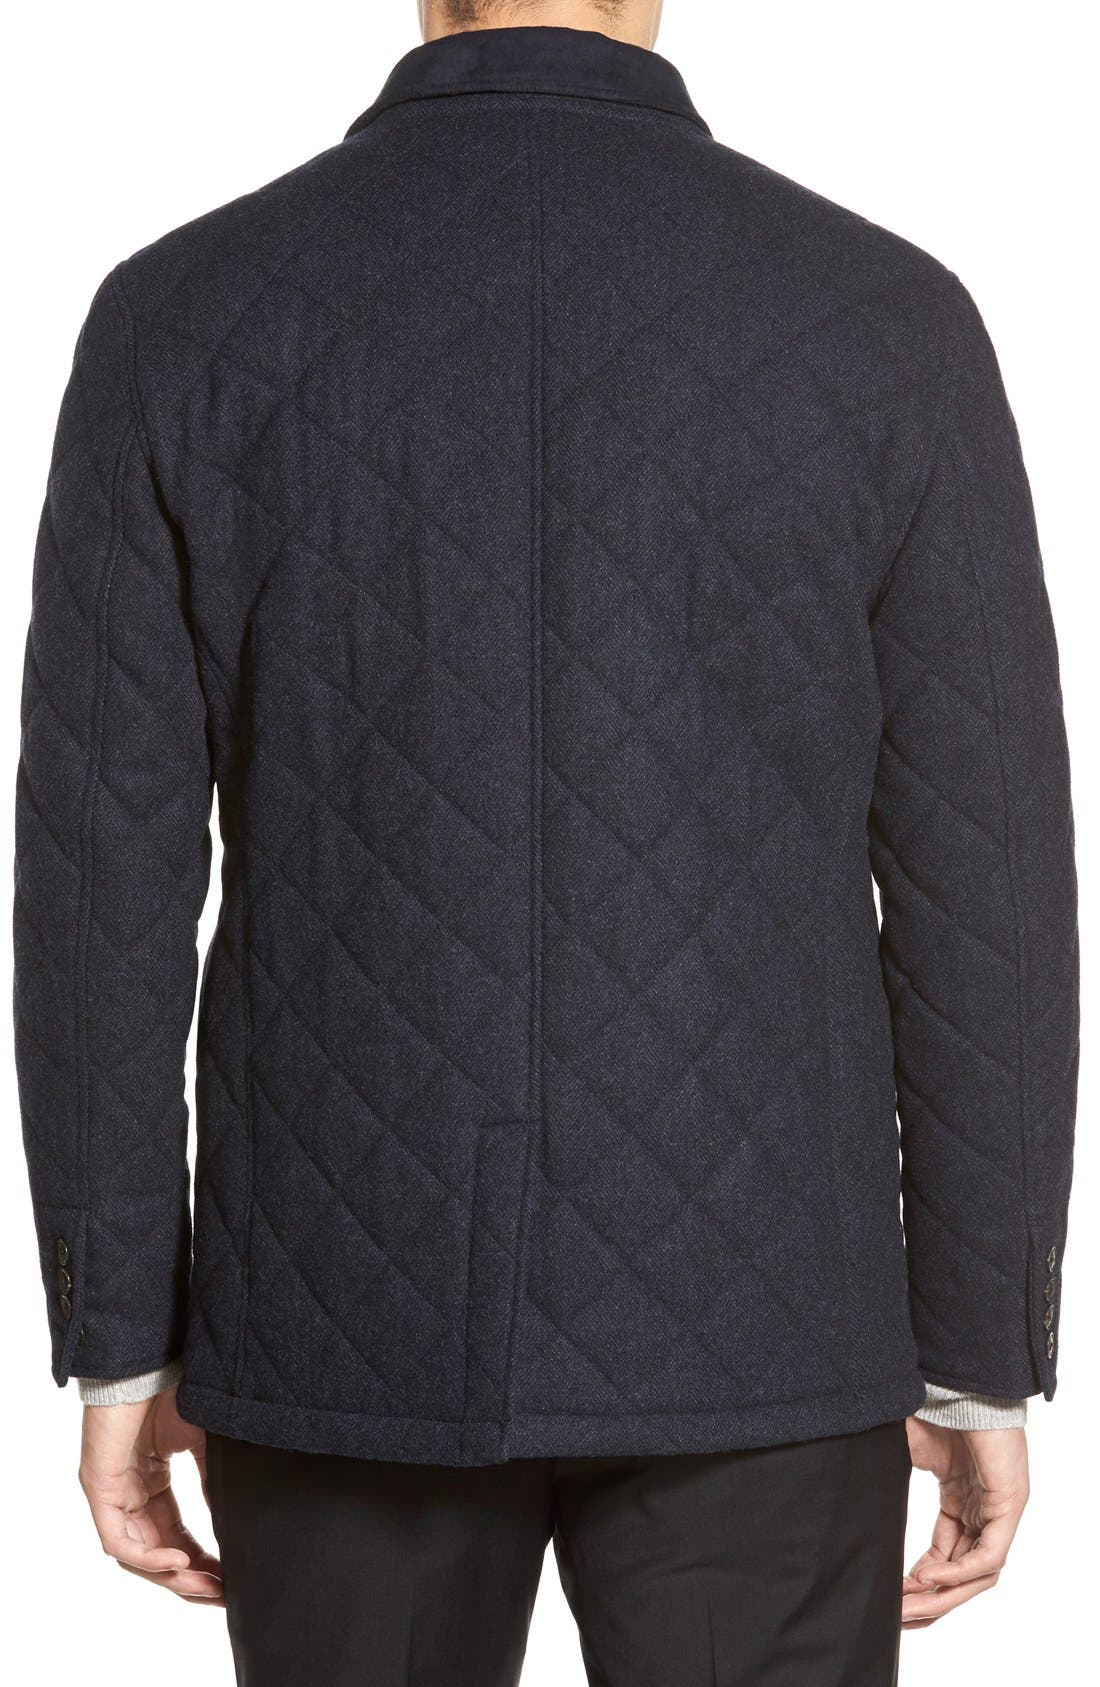 'Shooter' Wool Blend Quilted Jacket,                             Alternate thumbnail 6, color,